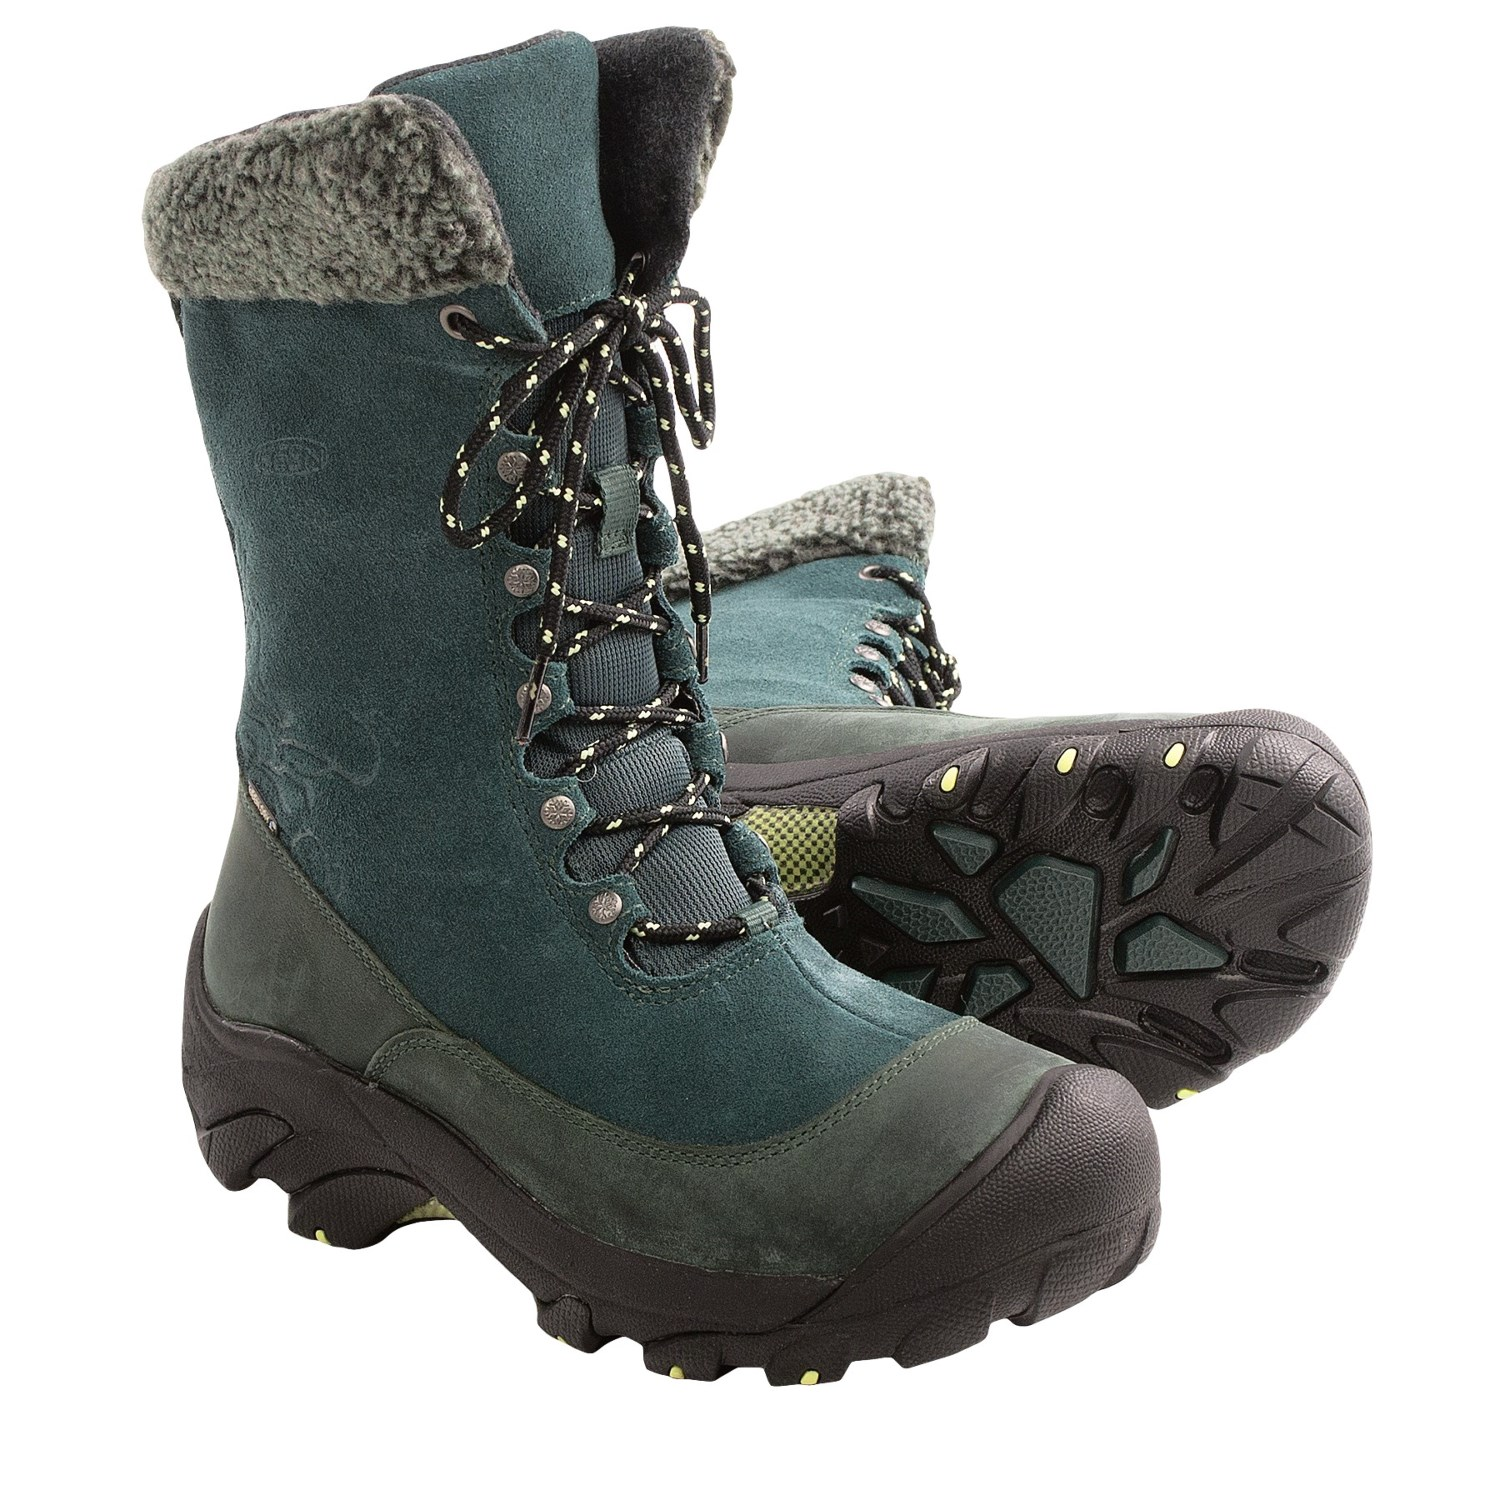 Womens Waterproof Snow Boots Clearance - Cr Boot